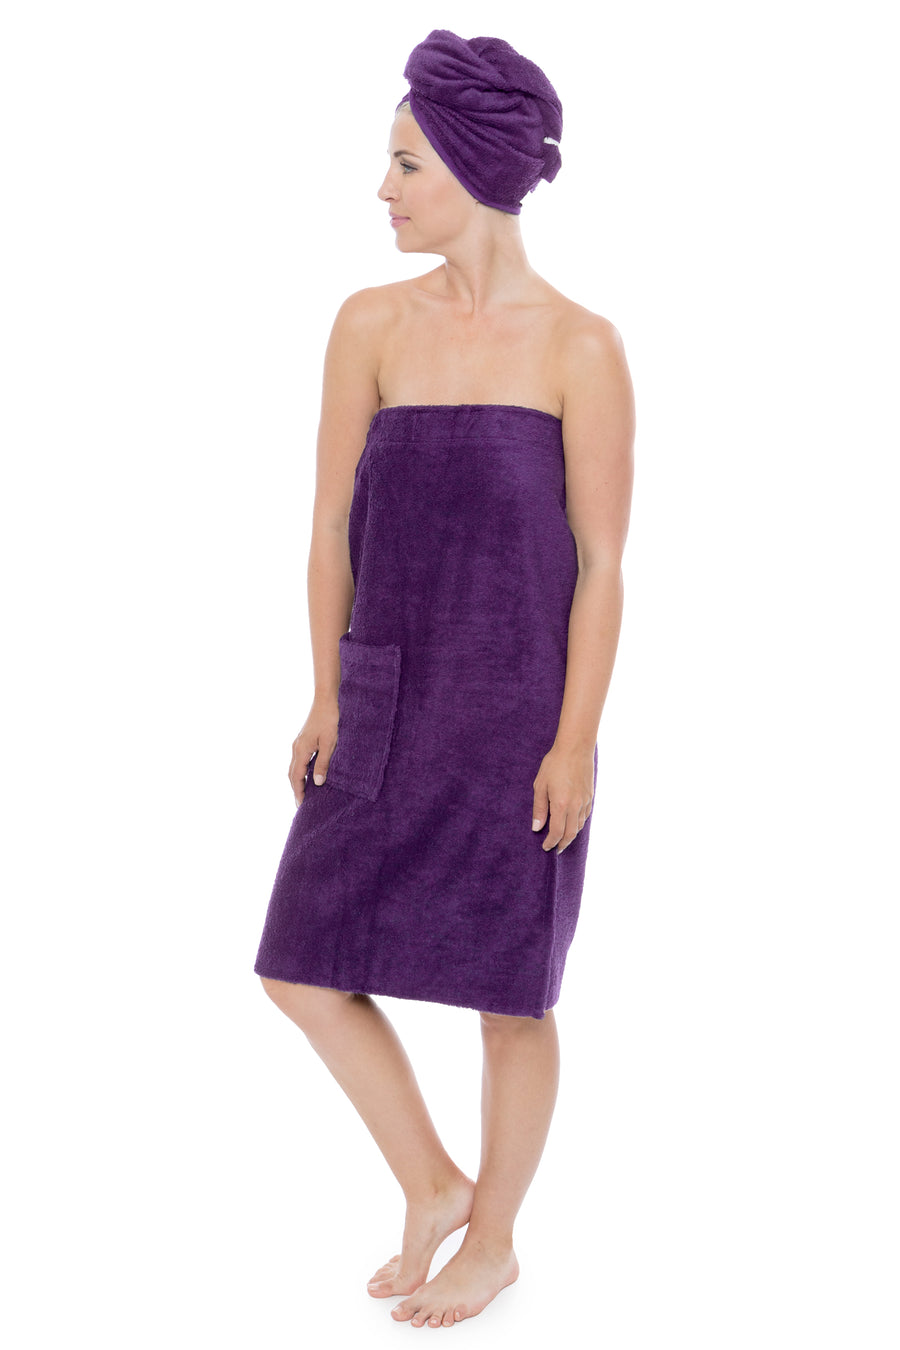 The Waterfall - Women's Bamboo Viscose Spa Wrap - testing23451234 - Towels